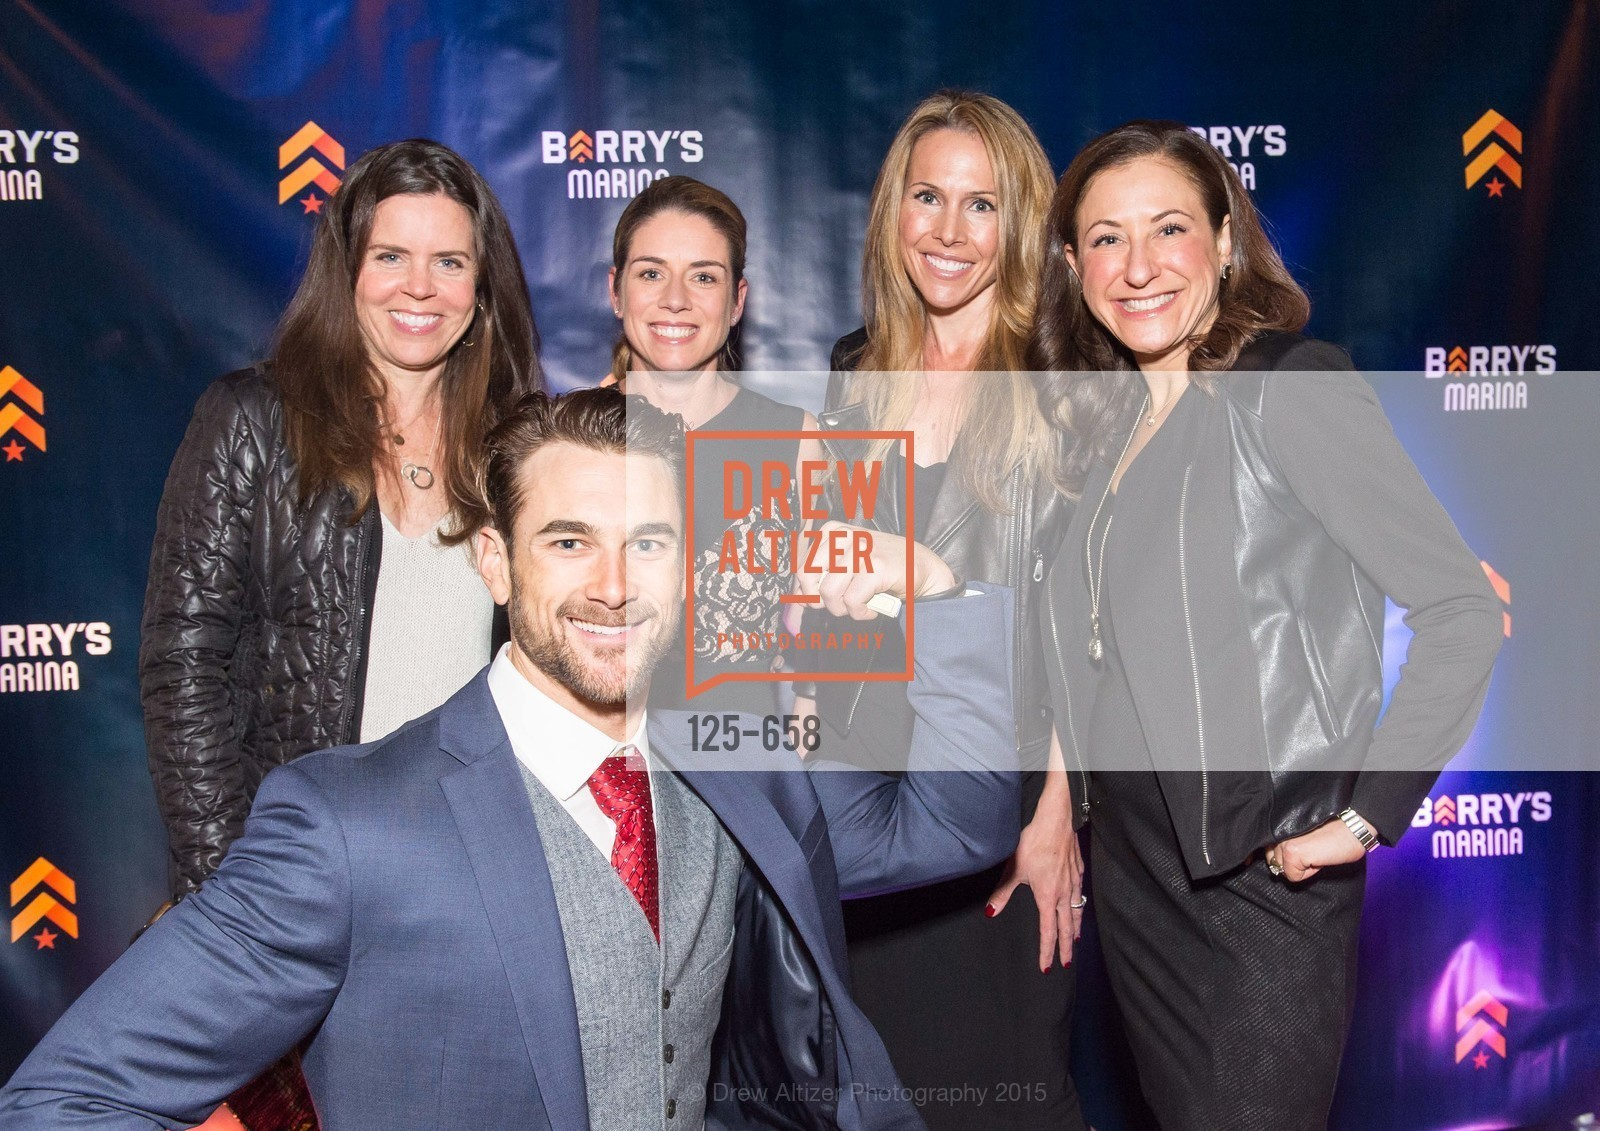 Beth Gray, Liz Farrell, Alex Lyon, Victoria Dade, Thomas Stracke, Barry's Marina Opening, Barry's. 2246 Lombard Street, December 17th, 2015,Drew Altizer, Drew Altizer Photography, full-service agency, private events, San Francisco photographer, photographer california